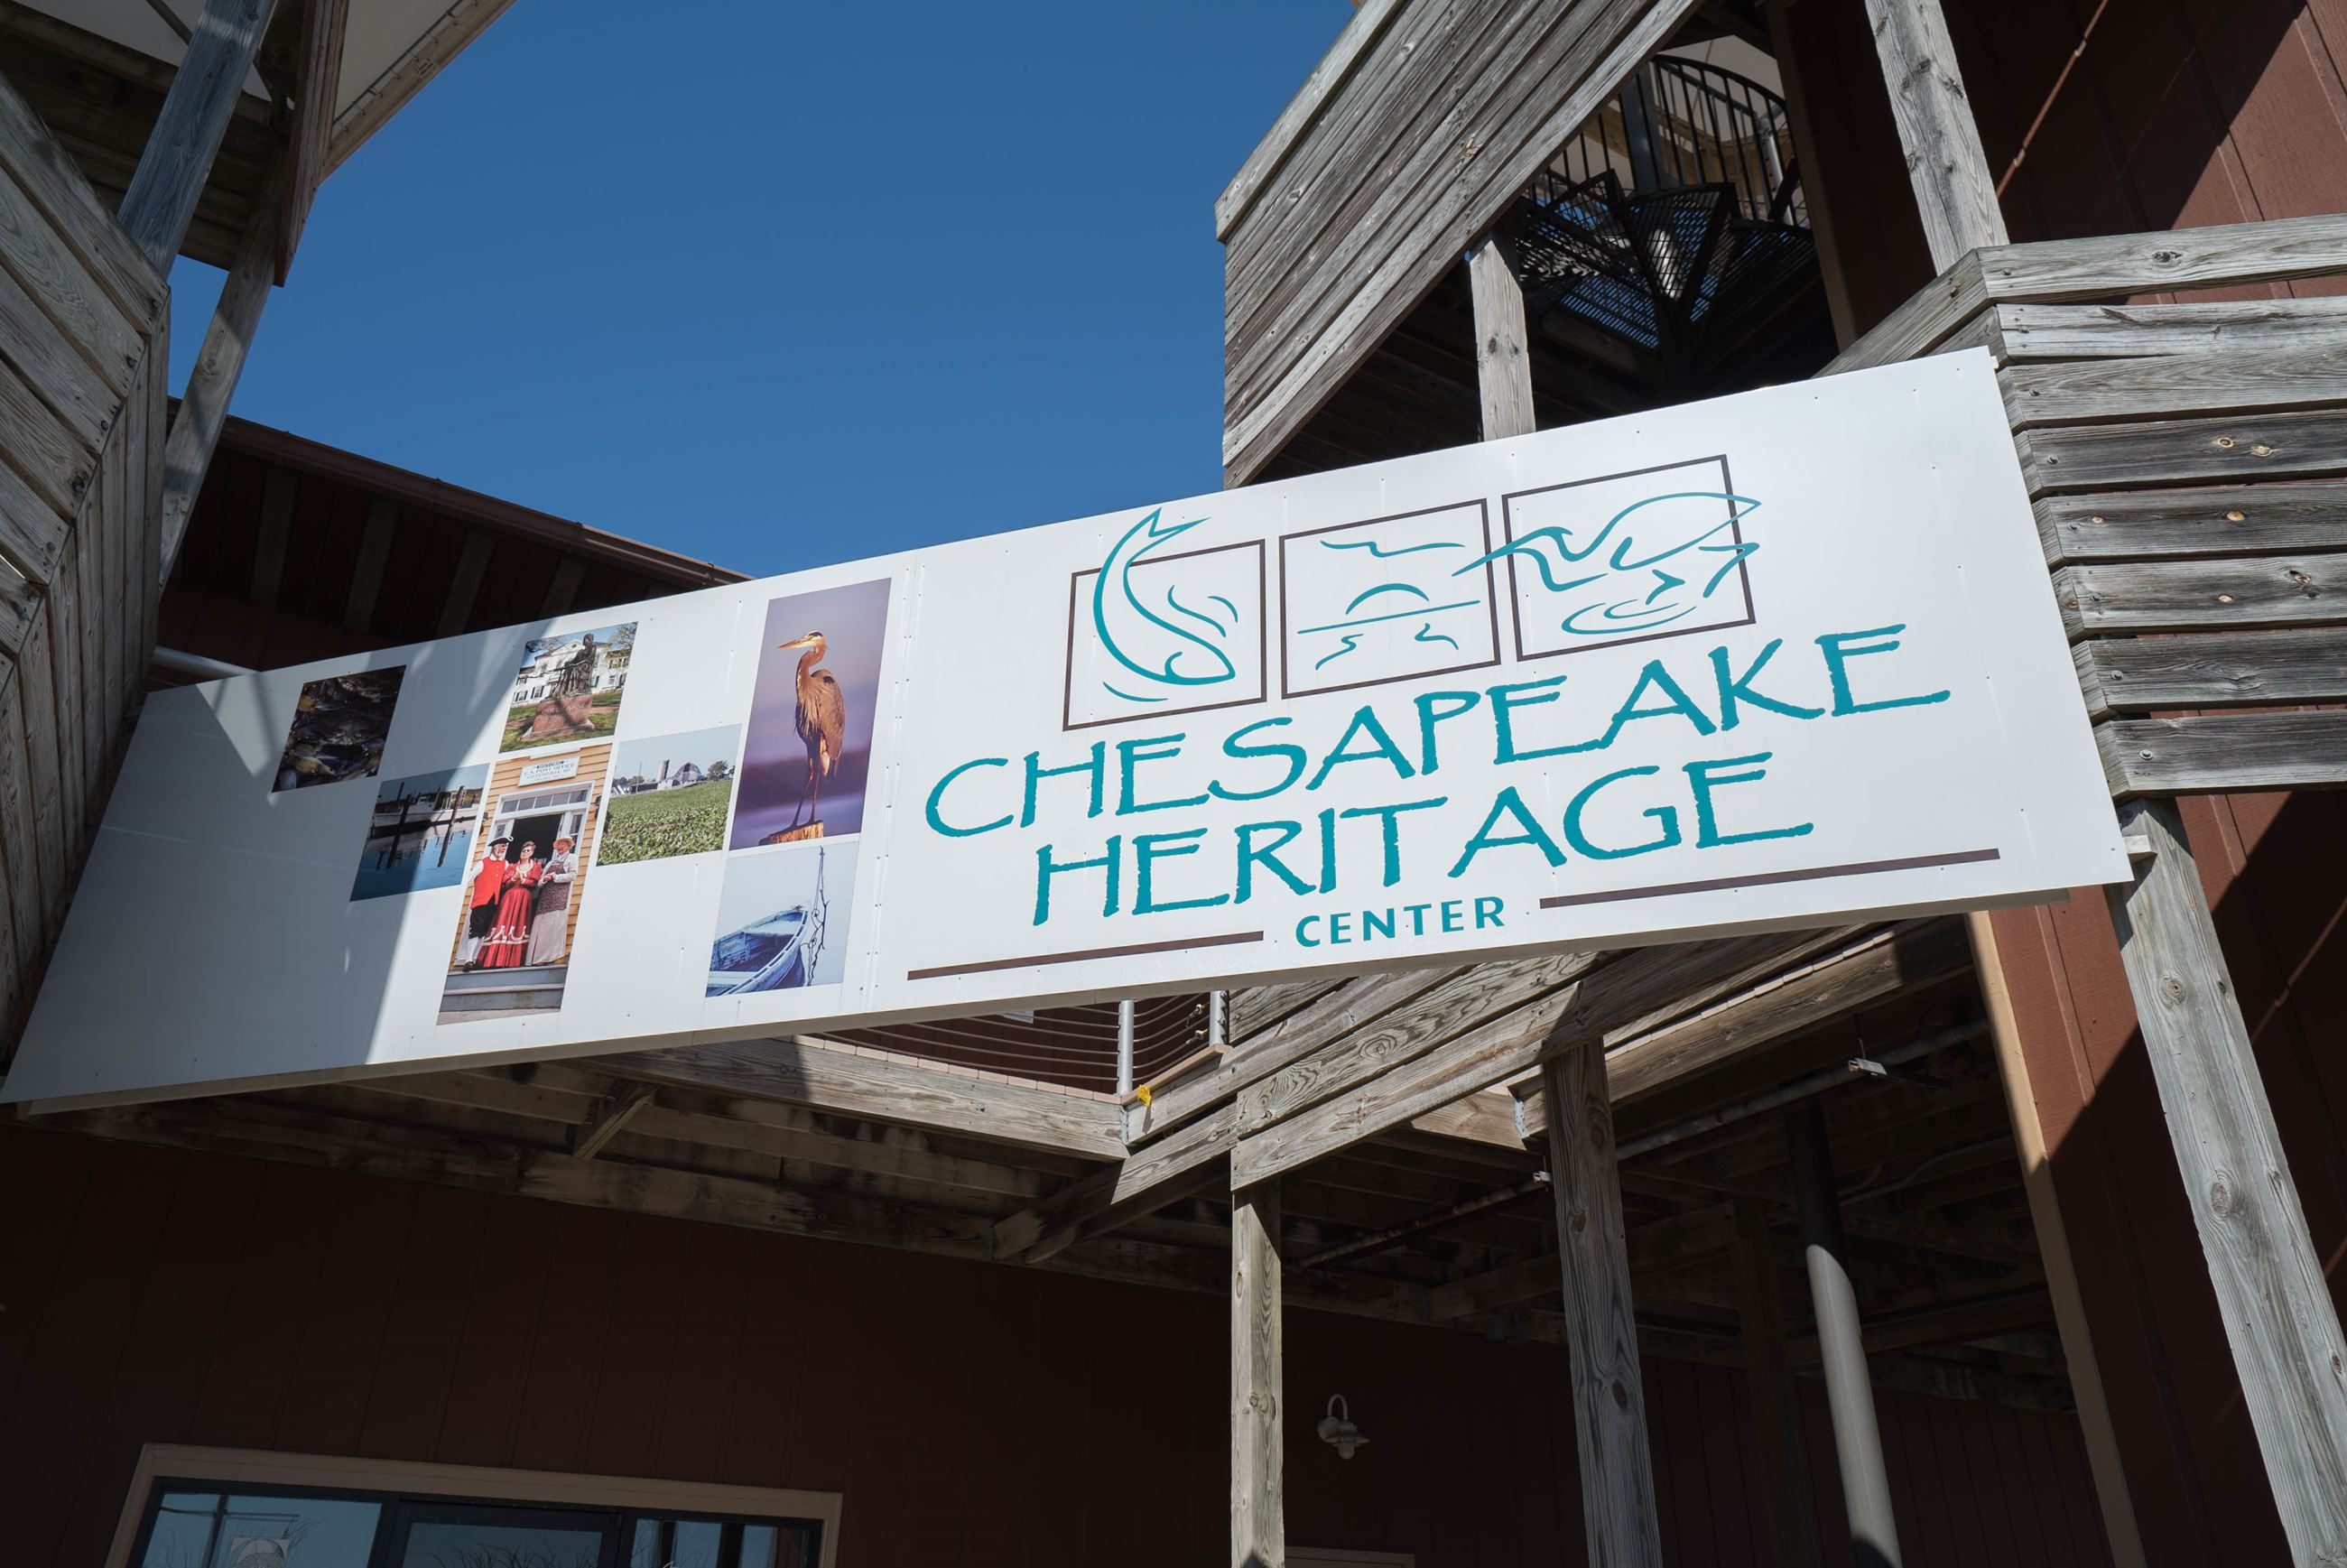 Chesapeake Heritage & Visitors Center